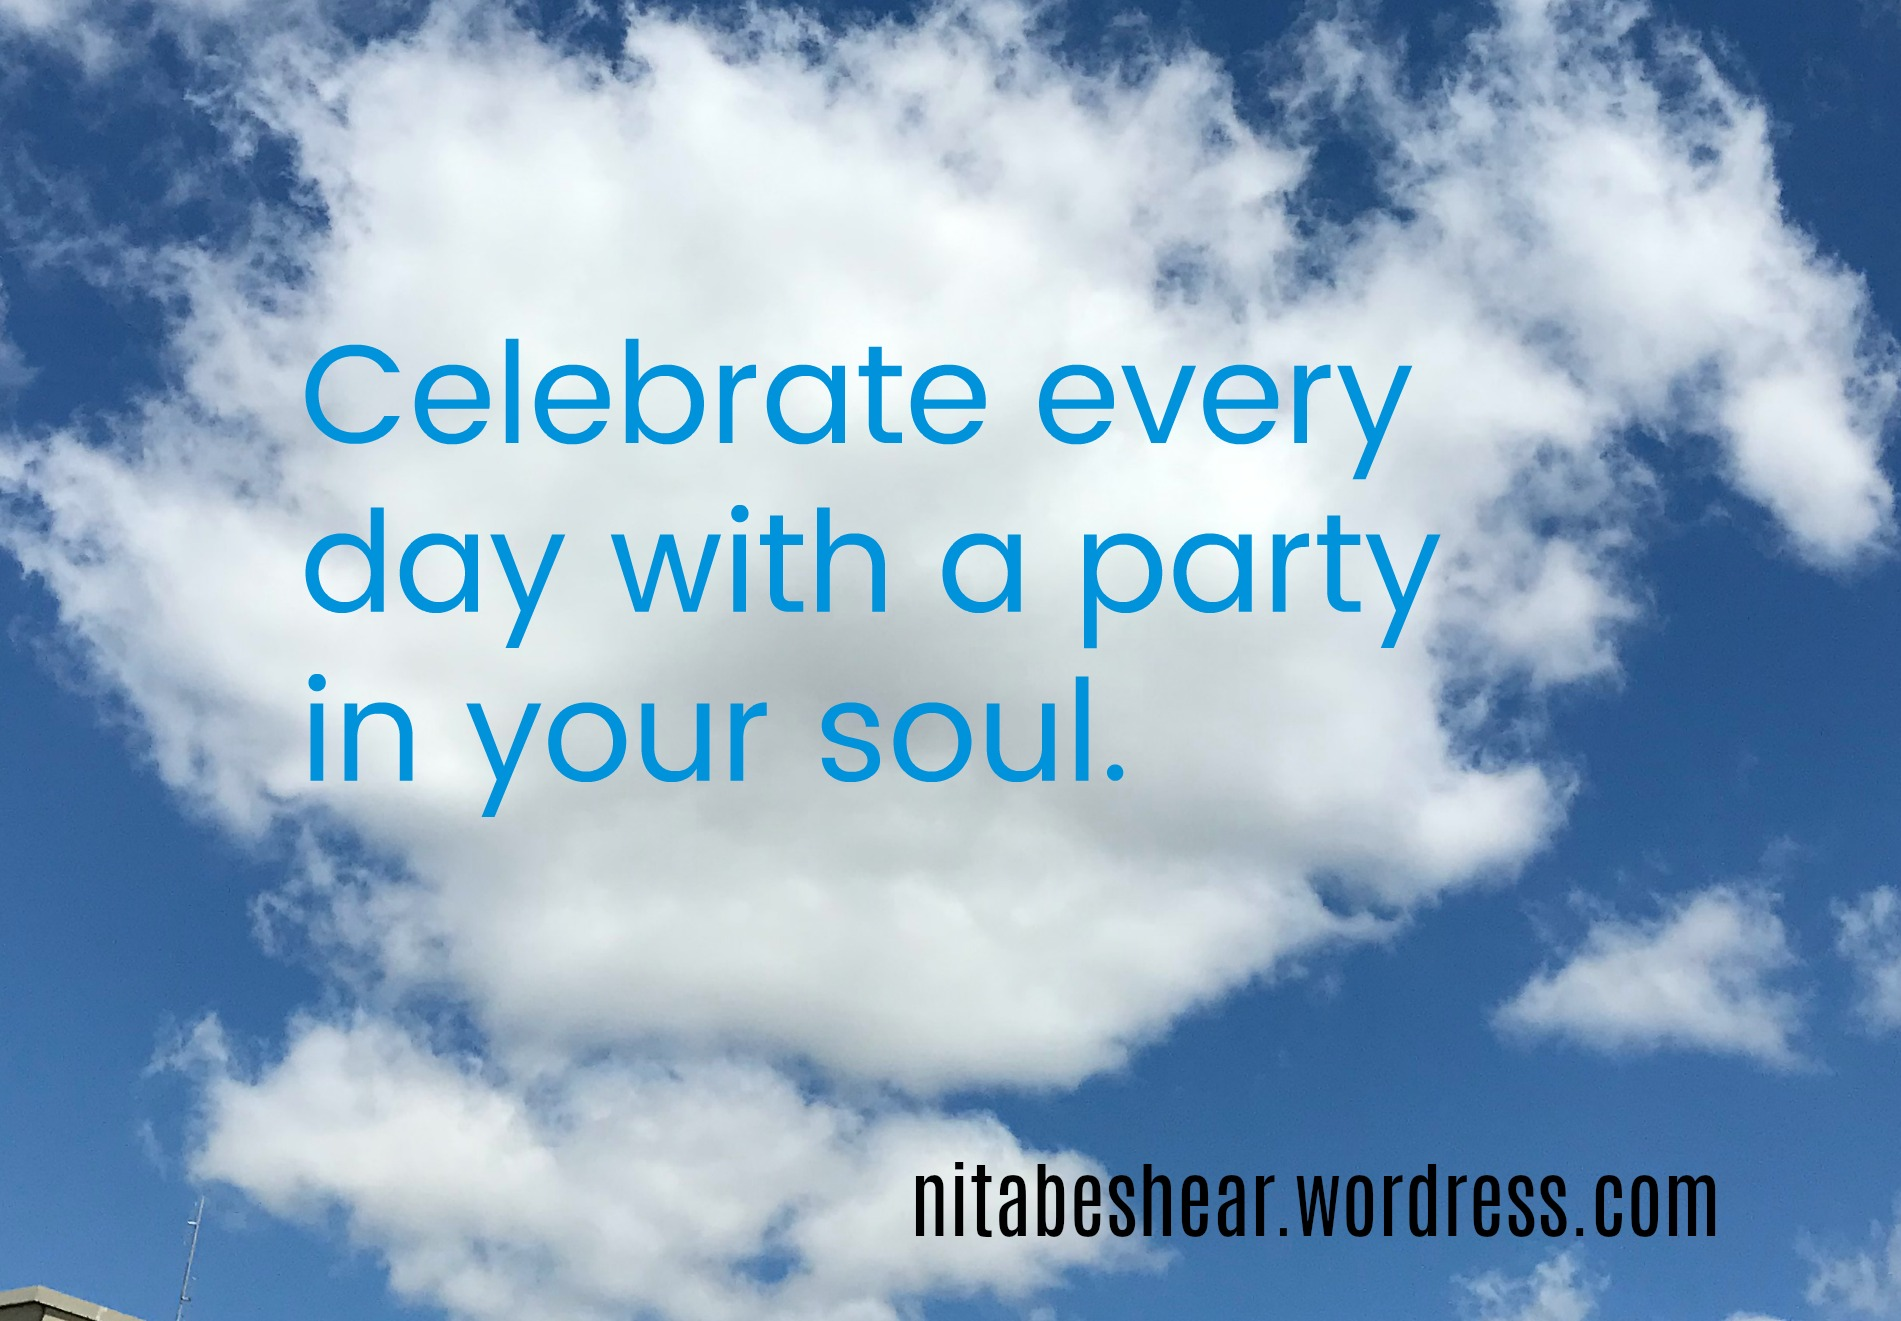 Party in soul on clouds